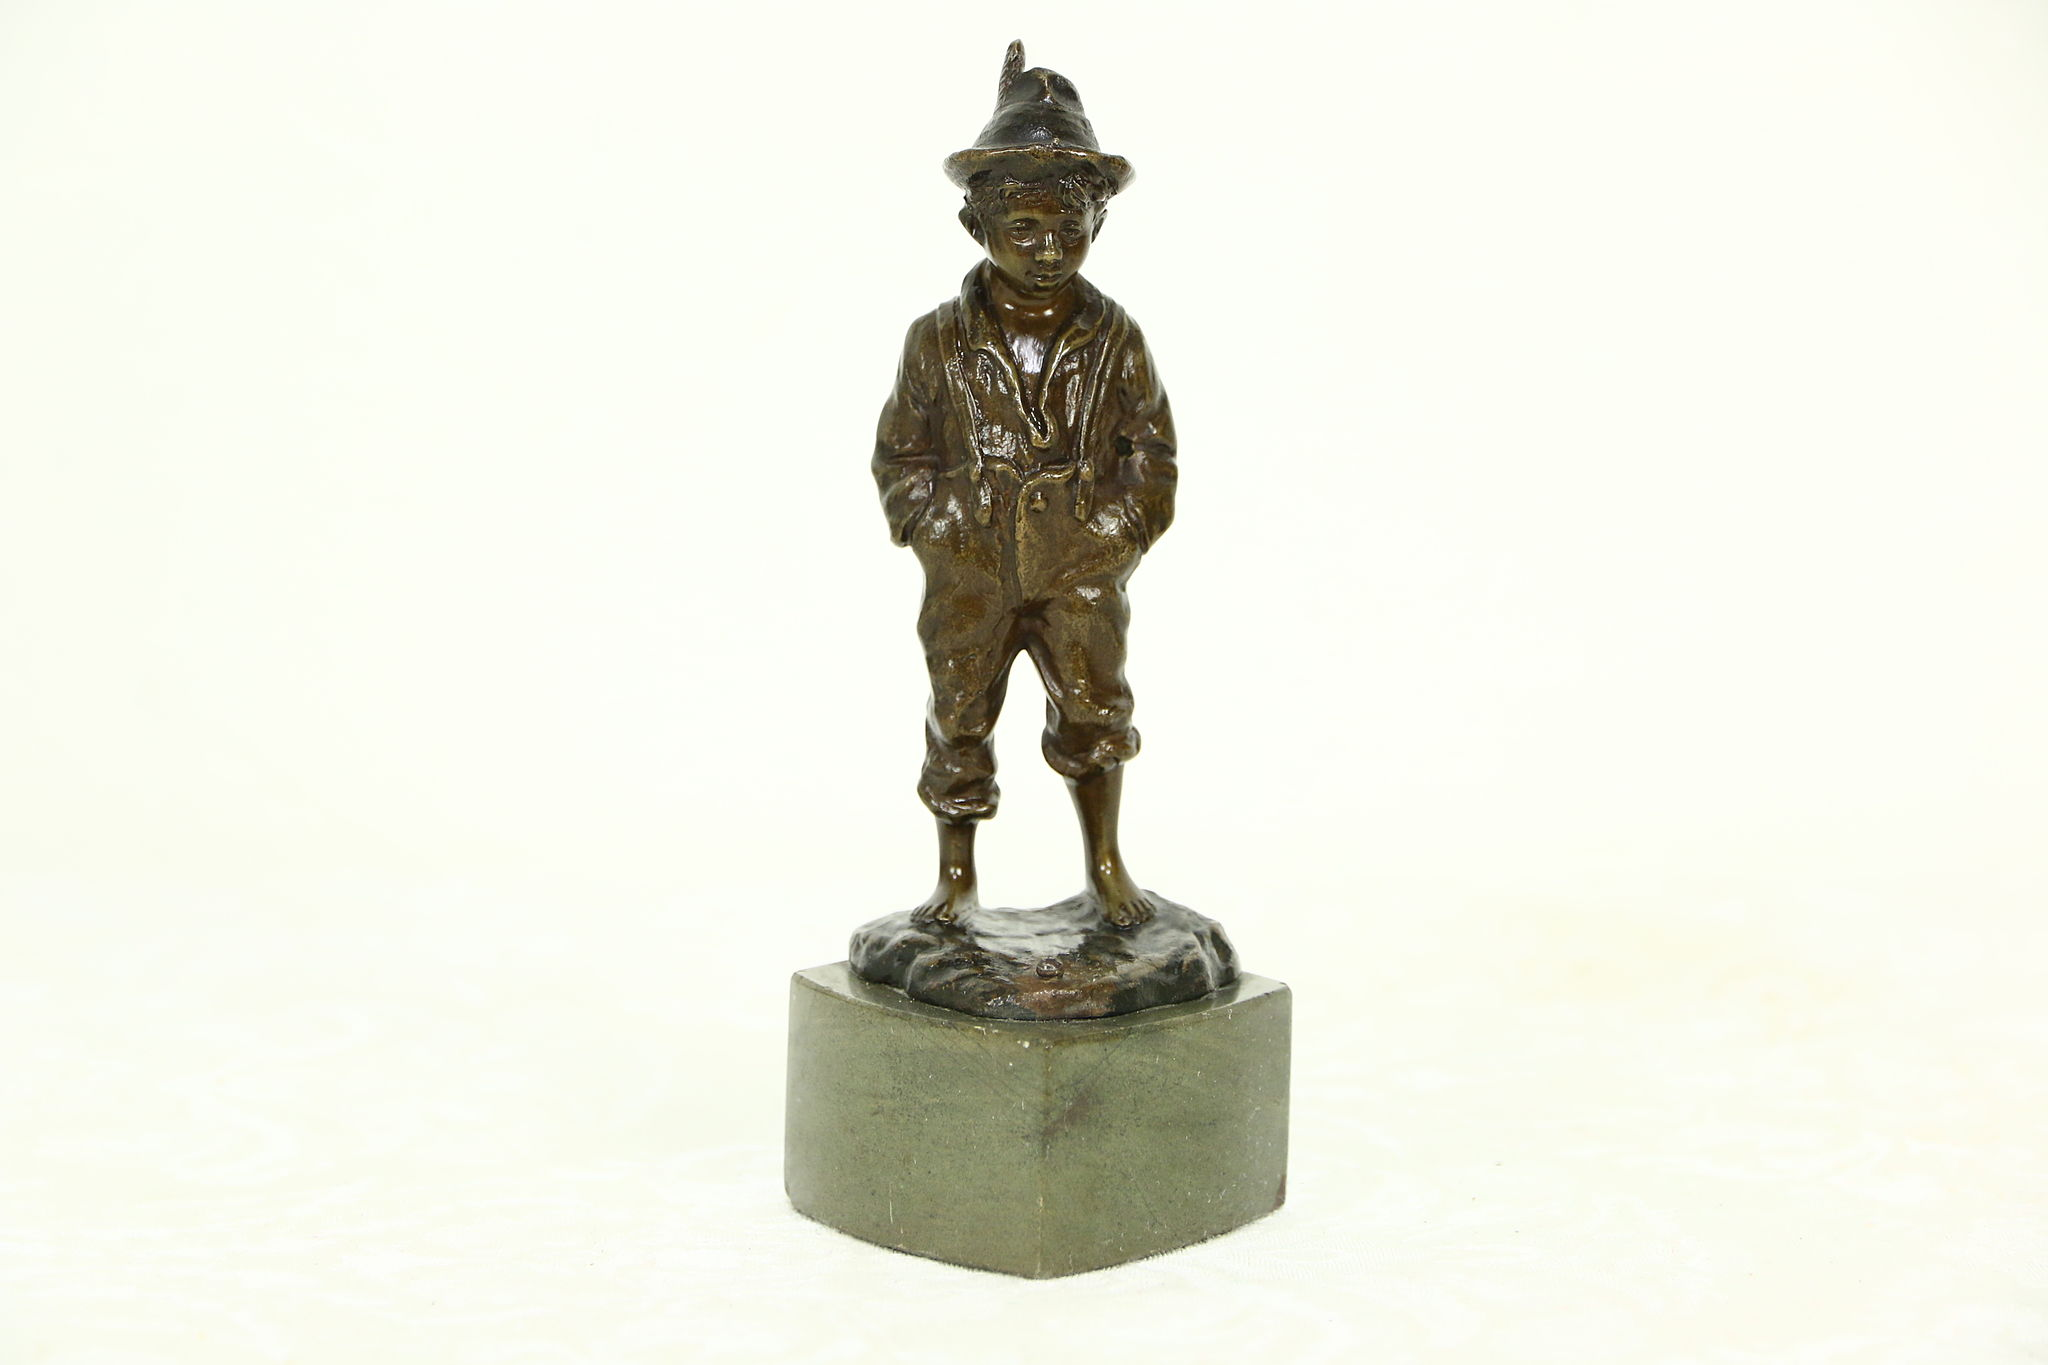 Bronze Antique Sculpture Of A Boy With A Feather In His